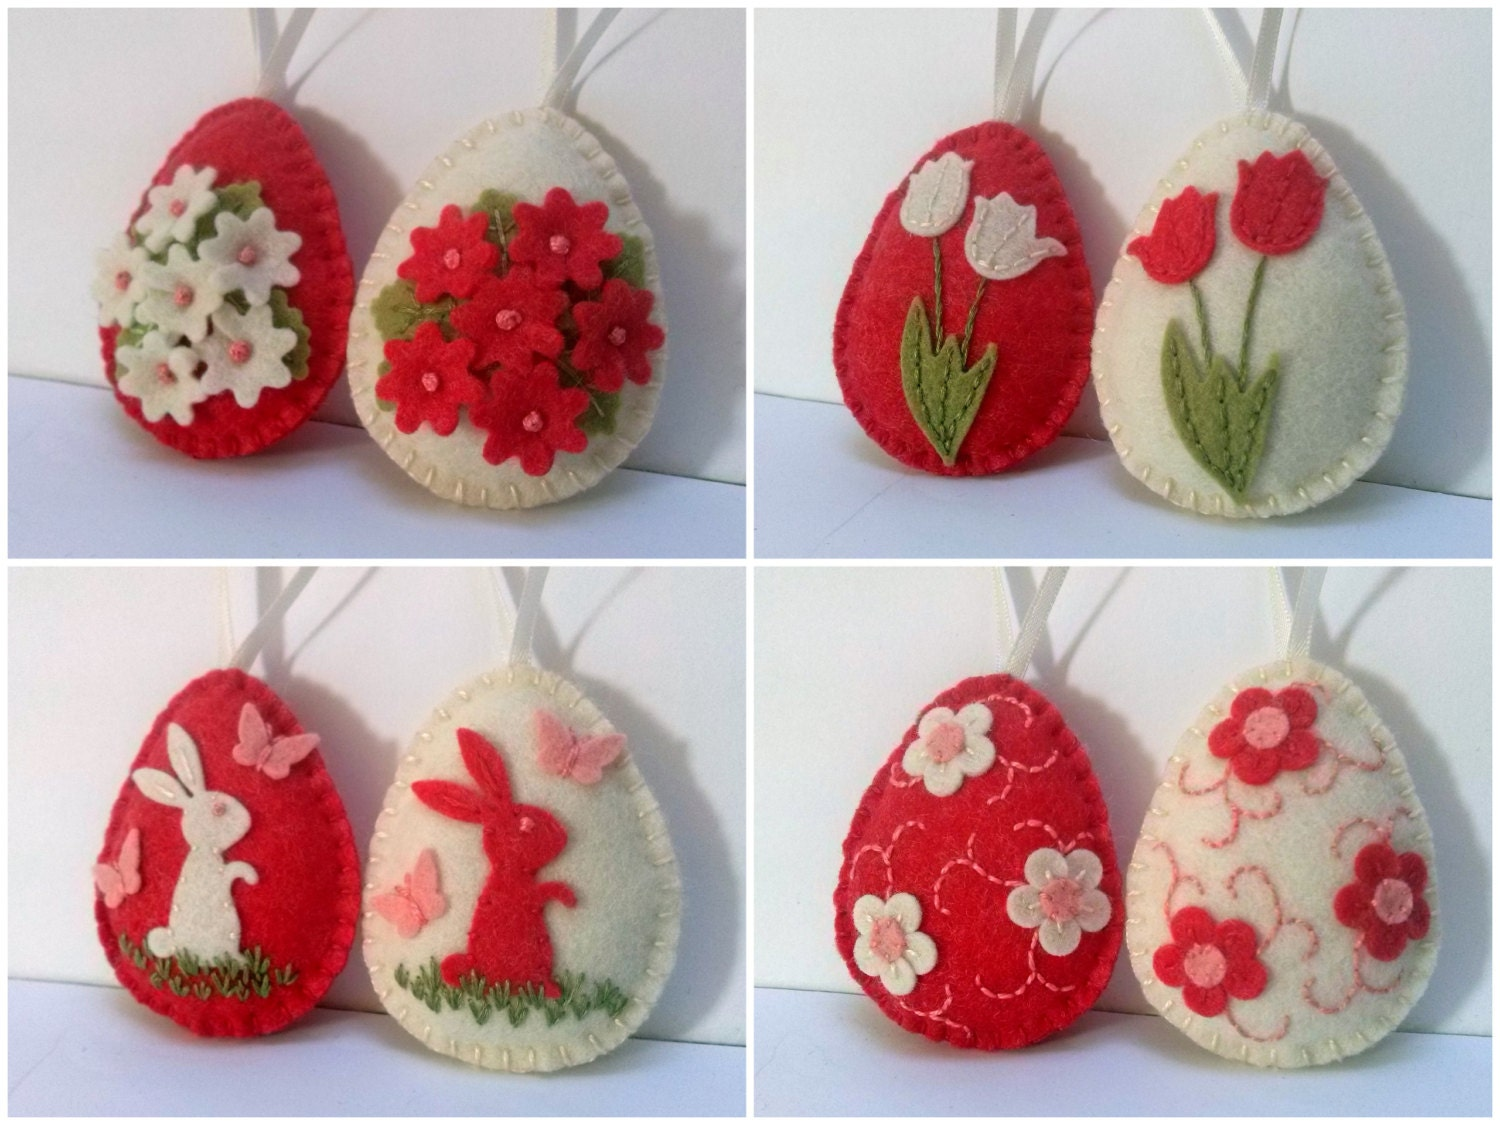 Felt Easter Decoration Felt Egg With Bunny Or Flowers. Peanuts Decorations. Large Living Room Rugs. Elegant Living Room Sets. Cheap Living Room Chairs. Best Stores For Home Decor. Laundry Room Shelving Units. Decor For Coffee Table. French Inspired Decor